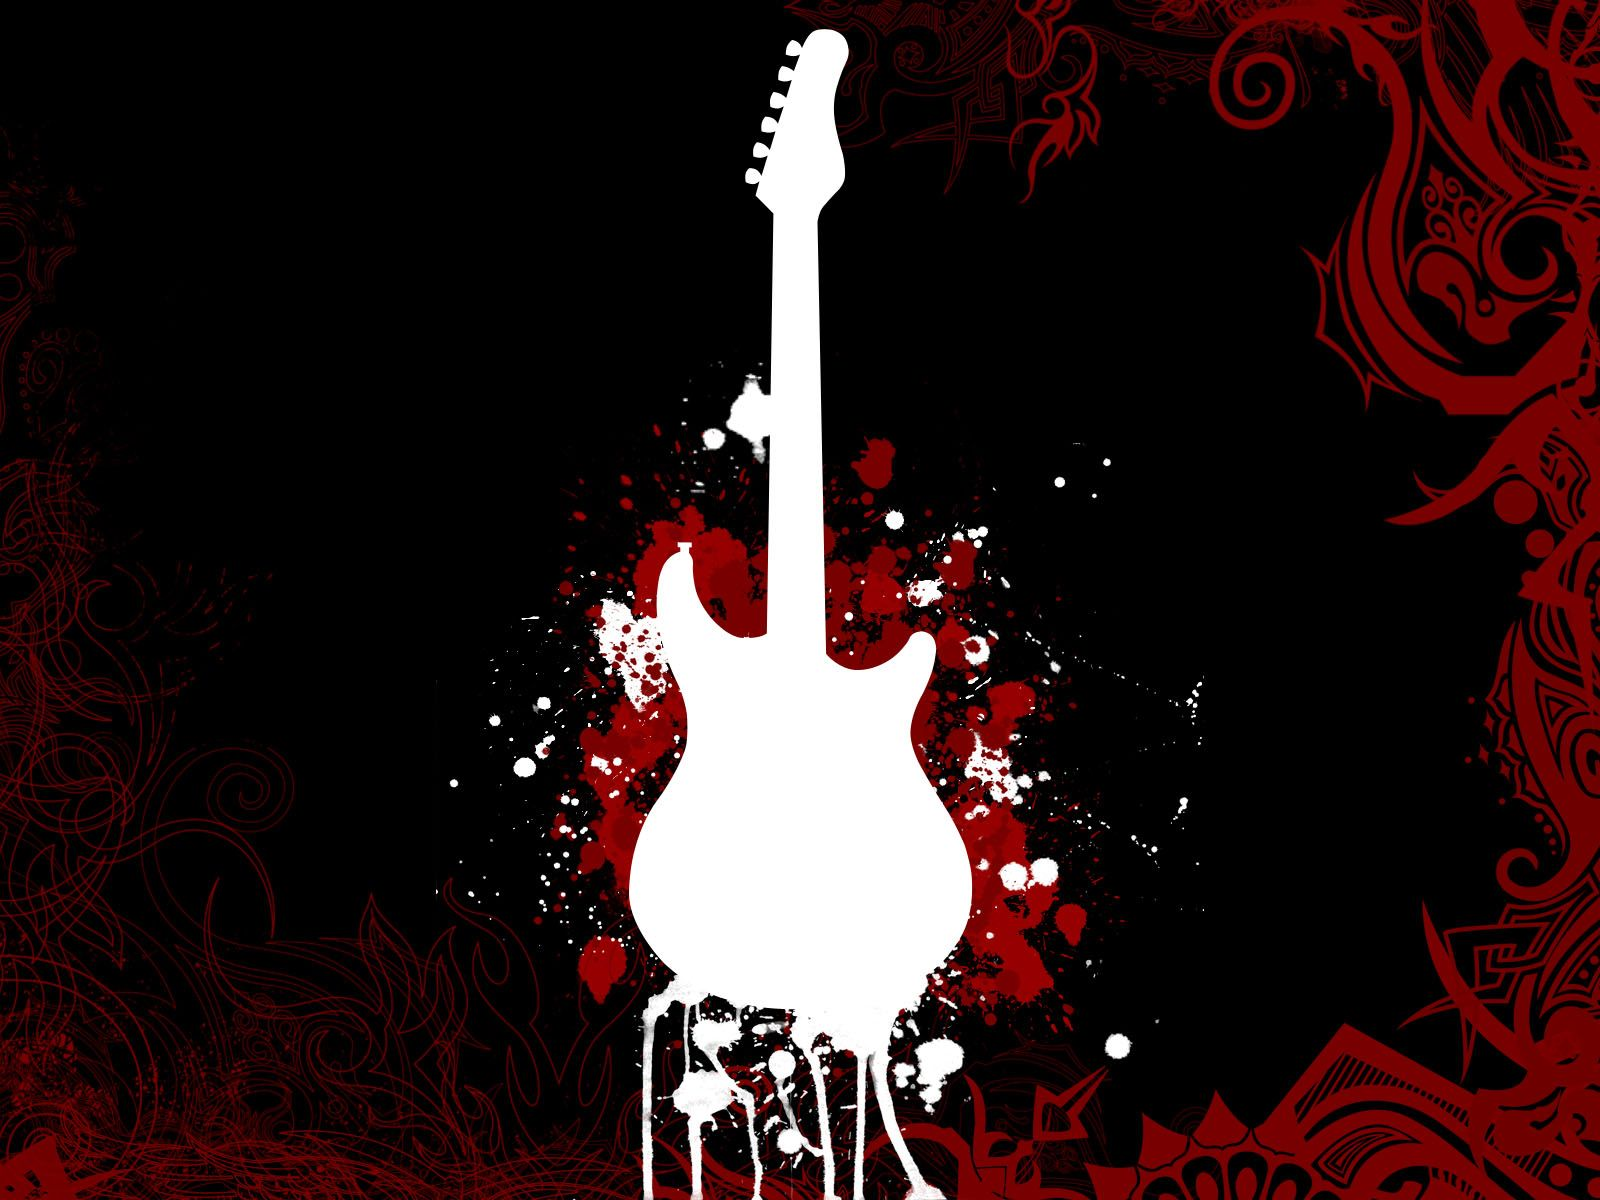 HD Guitar Wallpapers And Photos Uncategorized